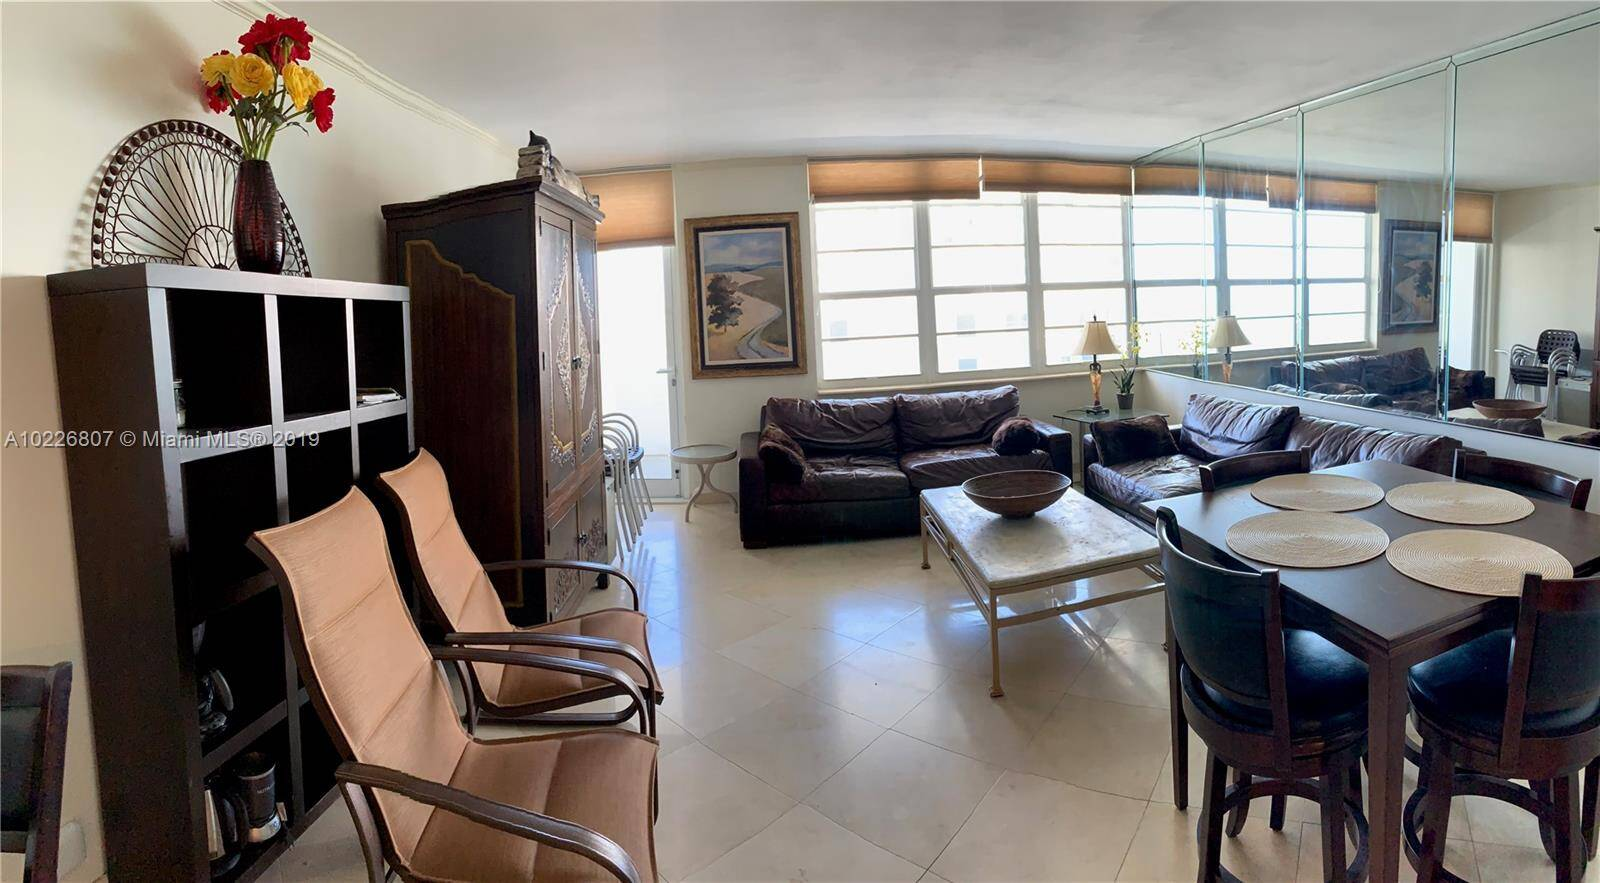 Decoplage South Beach For Sale| Unit #1034